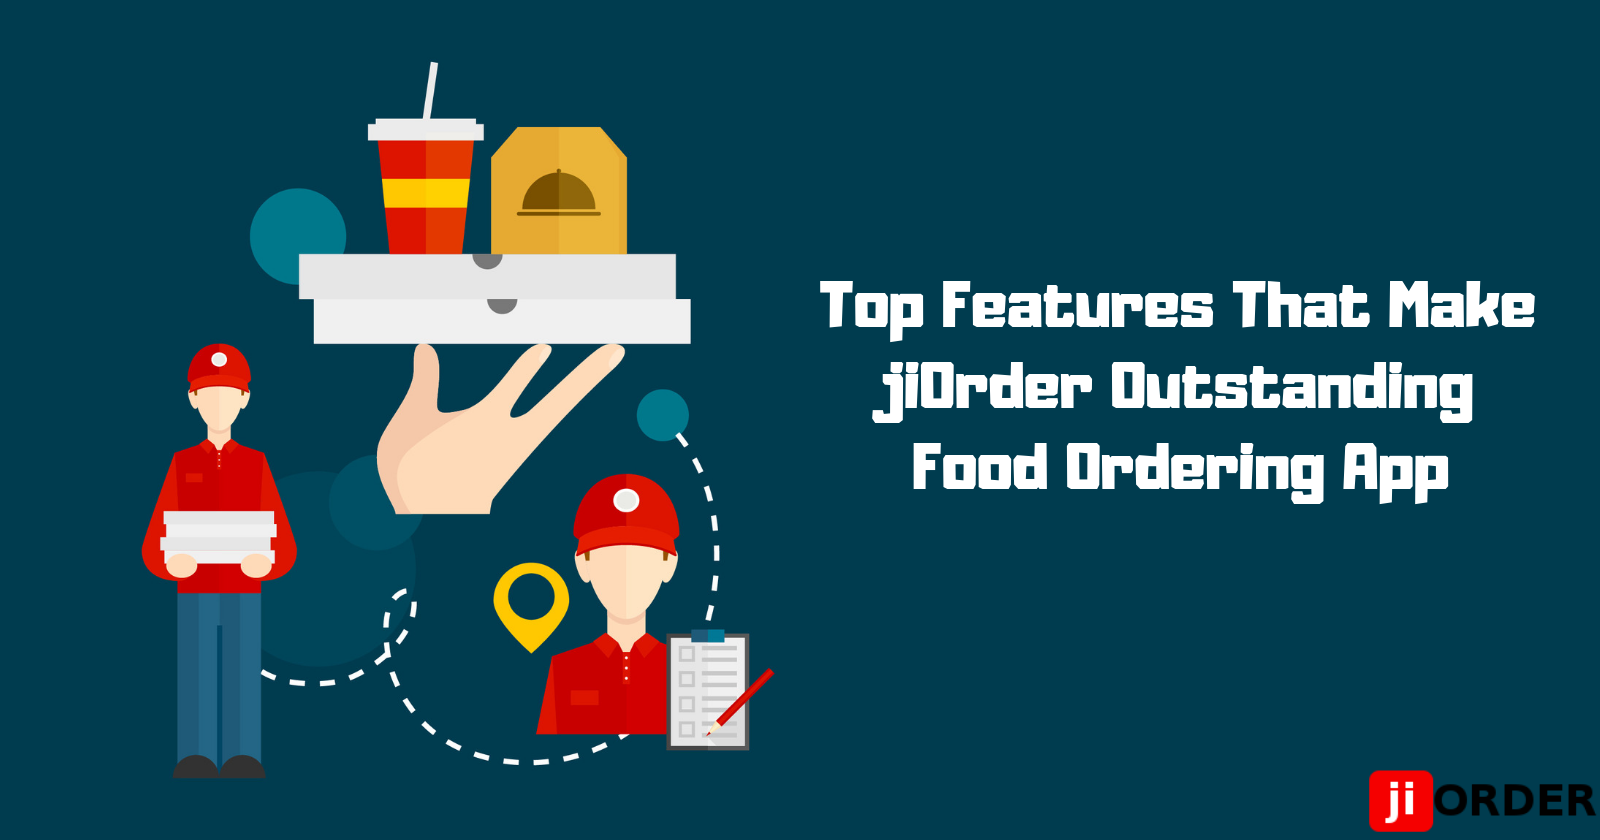 Top Features That Make jiOrder Outstanding Food Ordering App